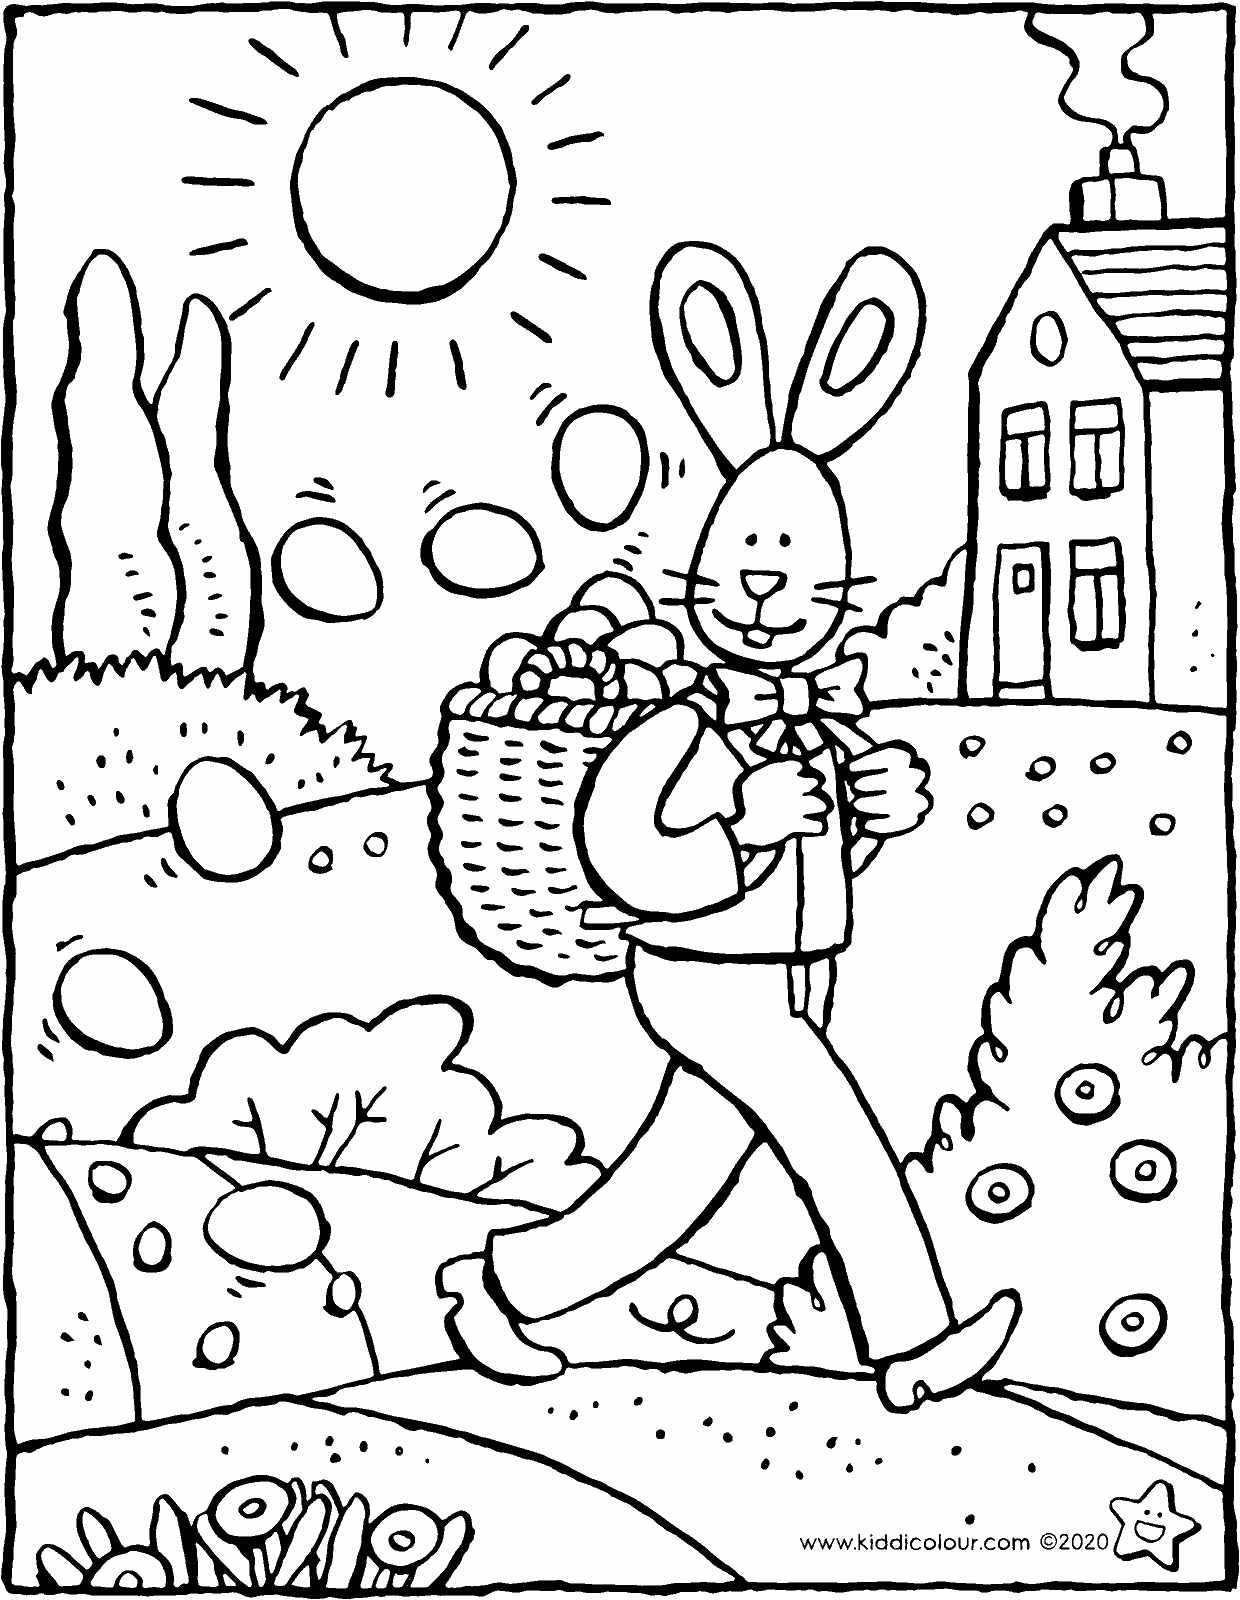 the Easter bunny distributes Easter eggs colouring page drawing picture 01V